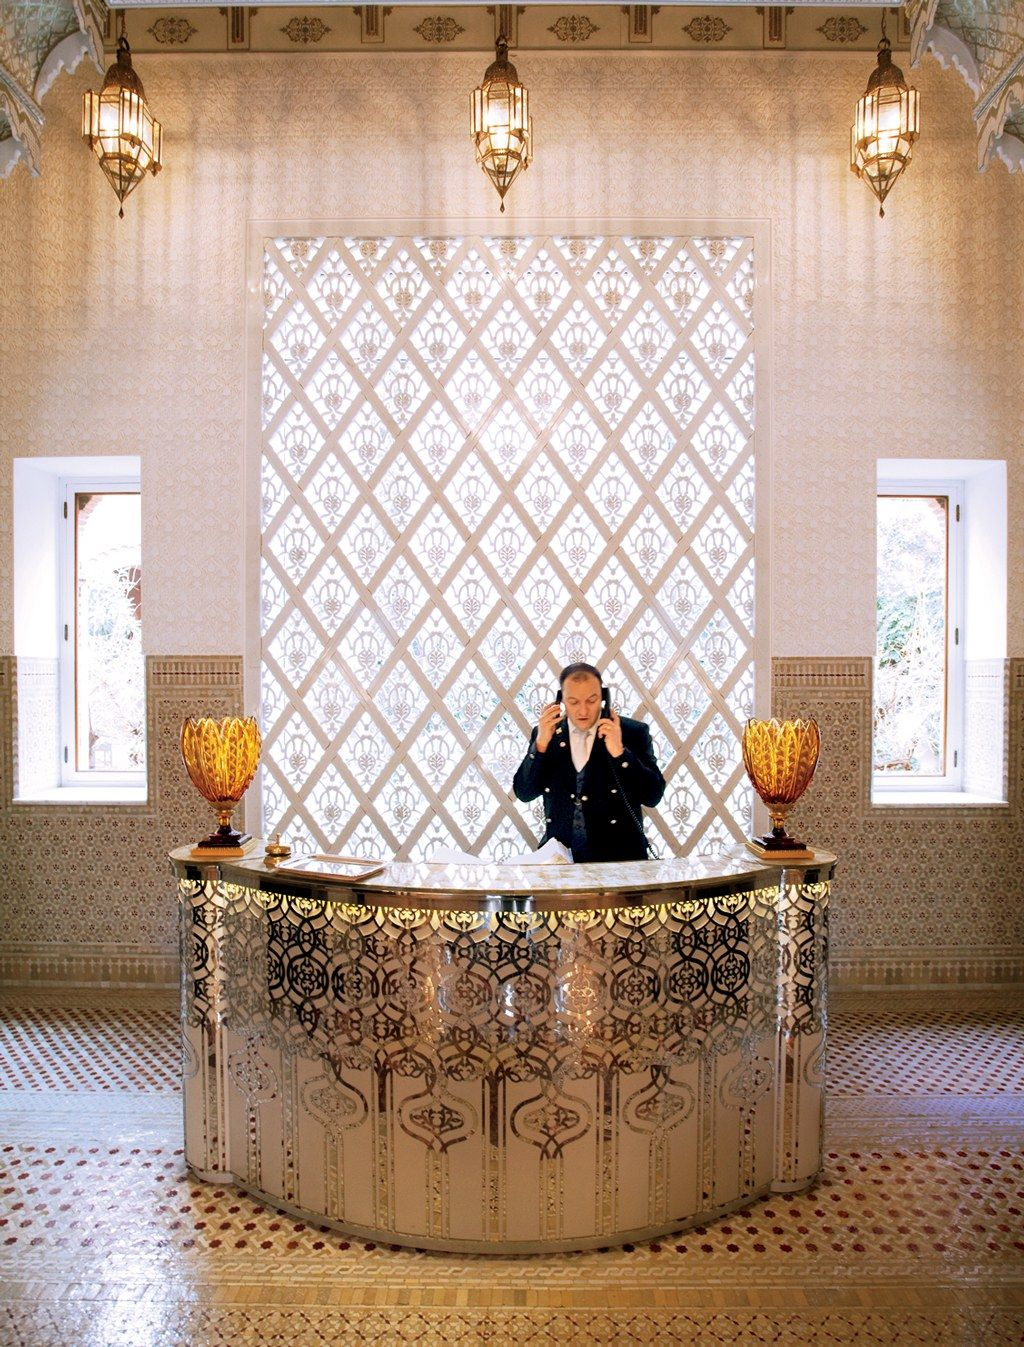 Hot List 2011 New Hotels Conde Nast Traveler Hotel Reception Desk Hotel Lobby Design Hotel Interior Design